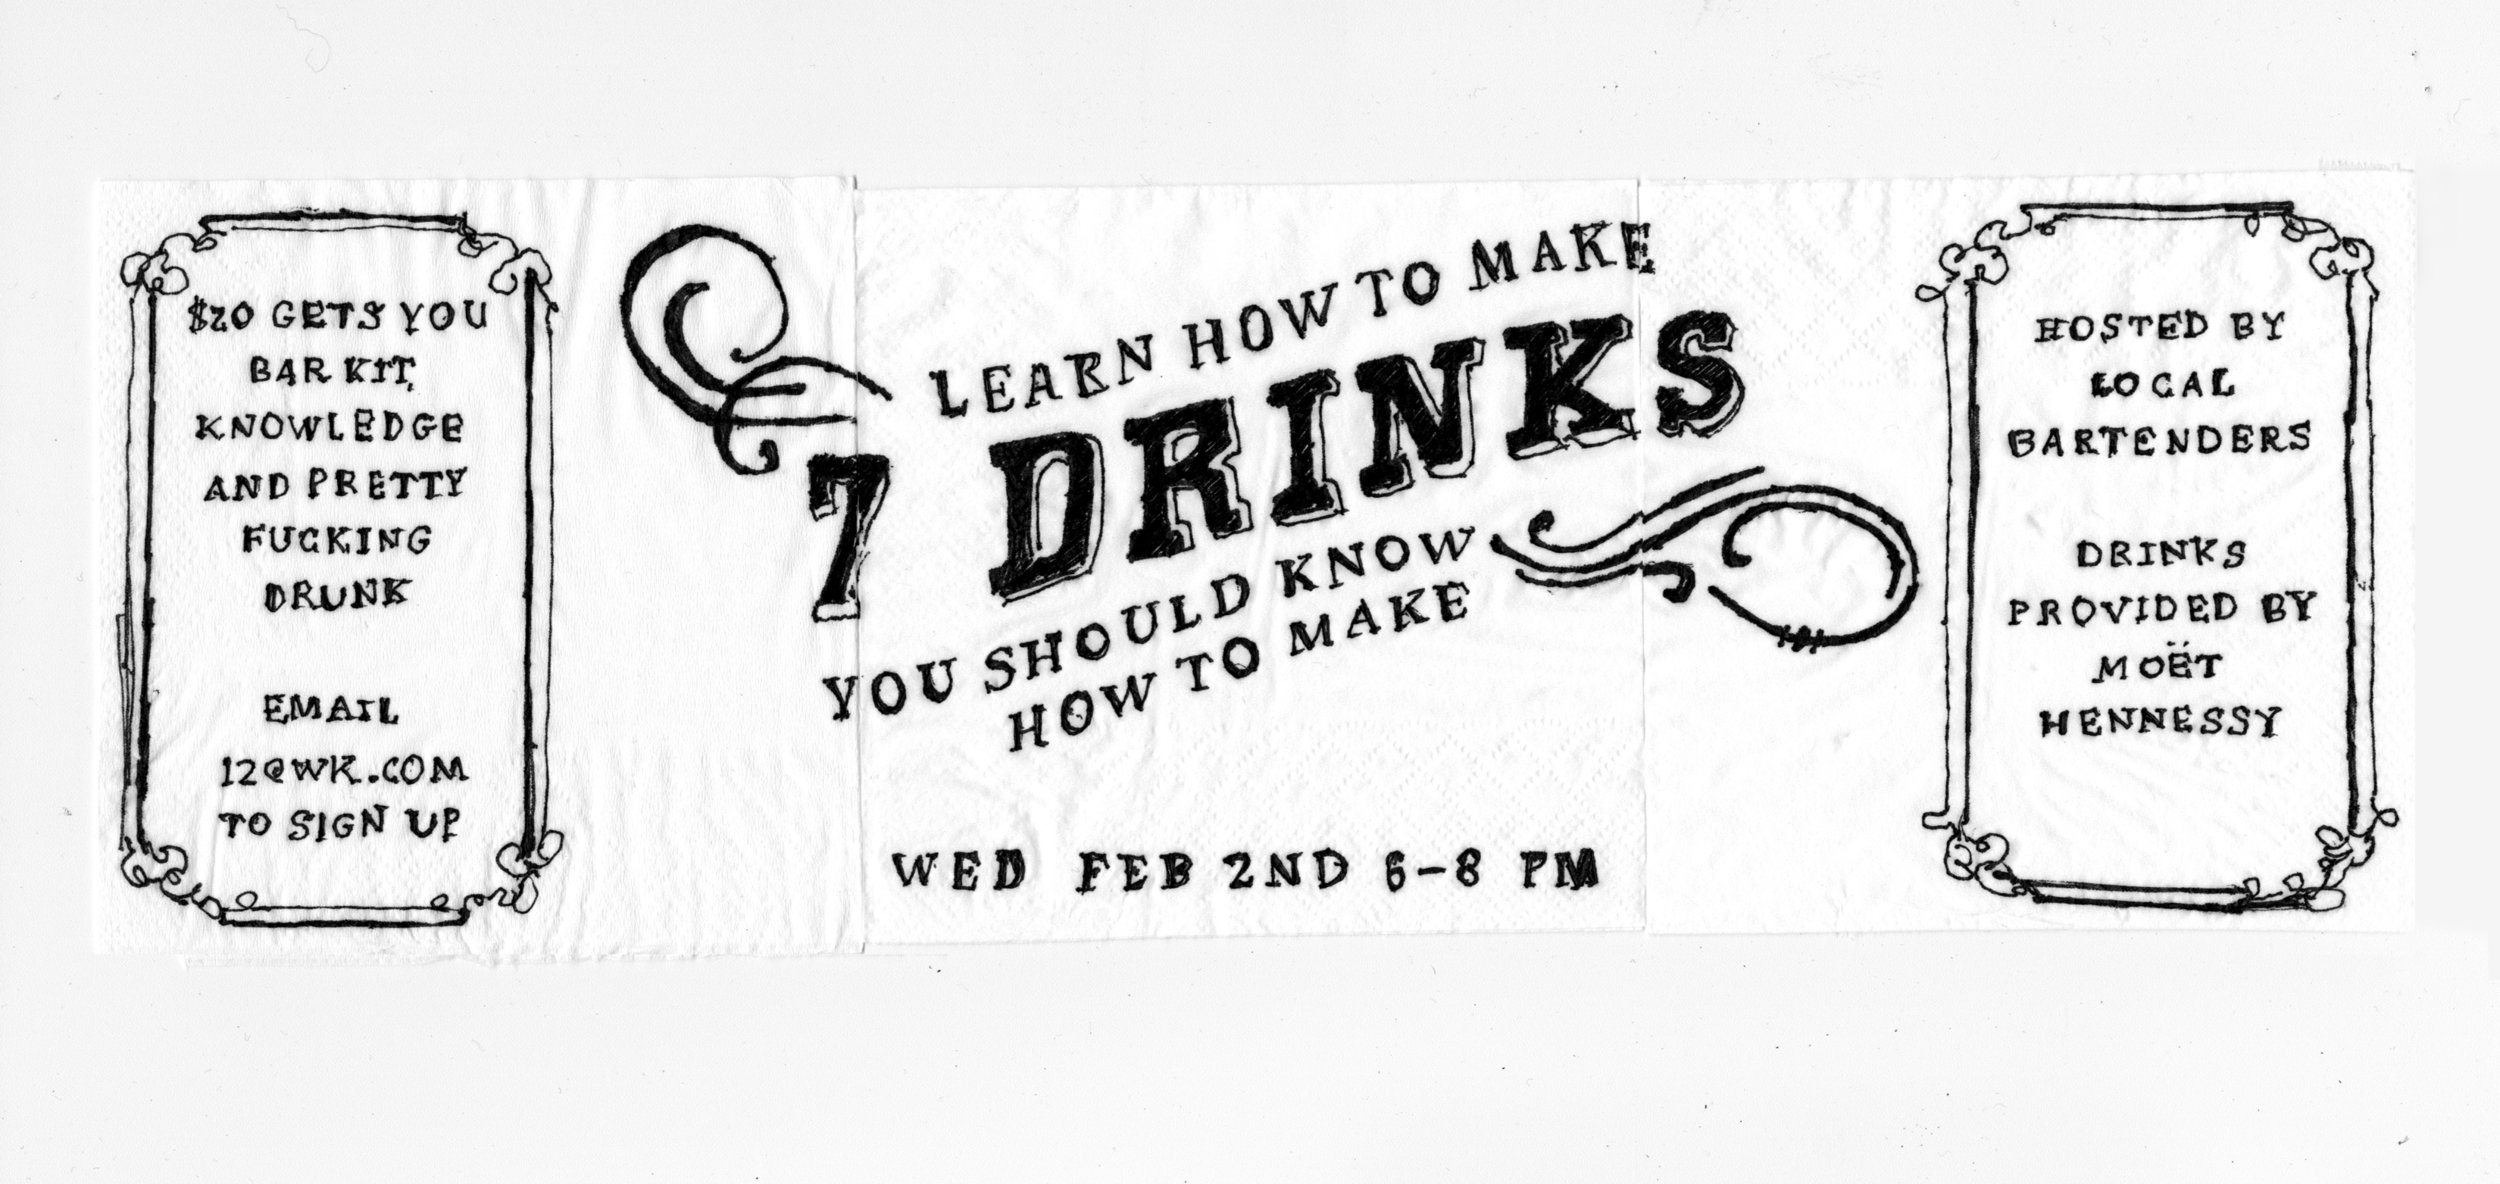 Since this idea - like all great ideas - was originally sketched on a bar napkin, we handwrote and hand drew everypromotional piece. We even enlisted some fellow 12ers to design custom napkin posters to add variety. These were hung around the agency.